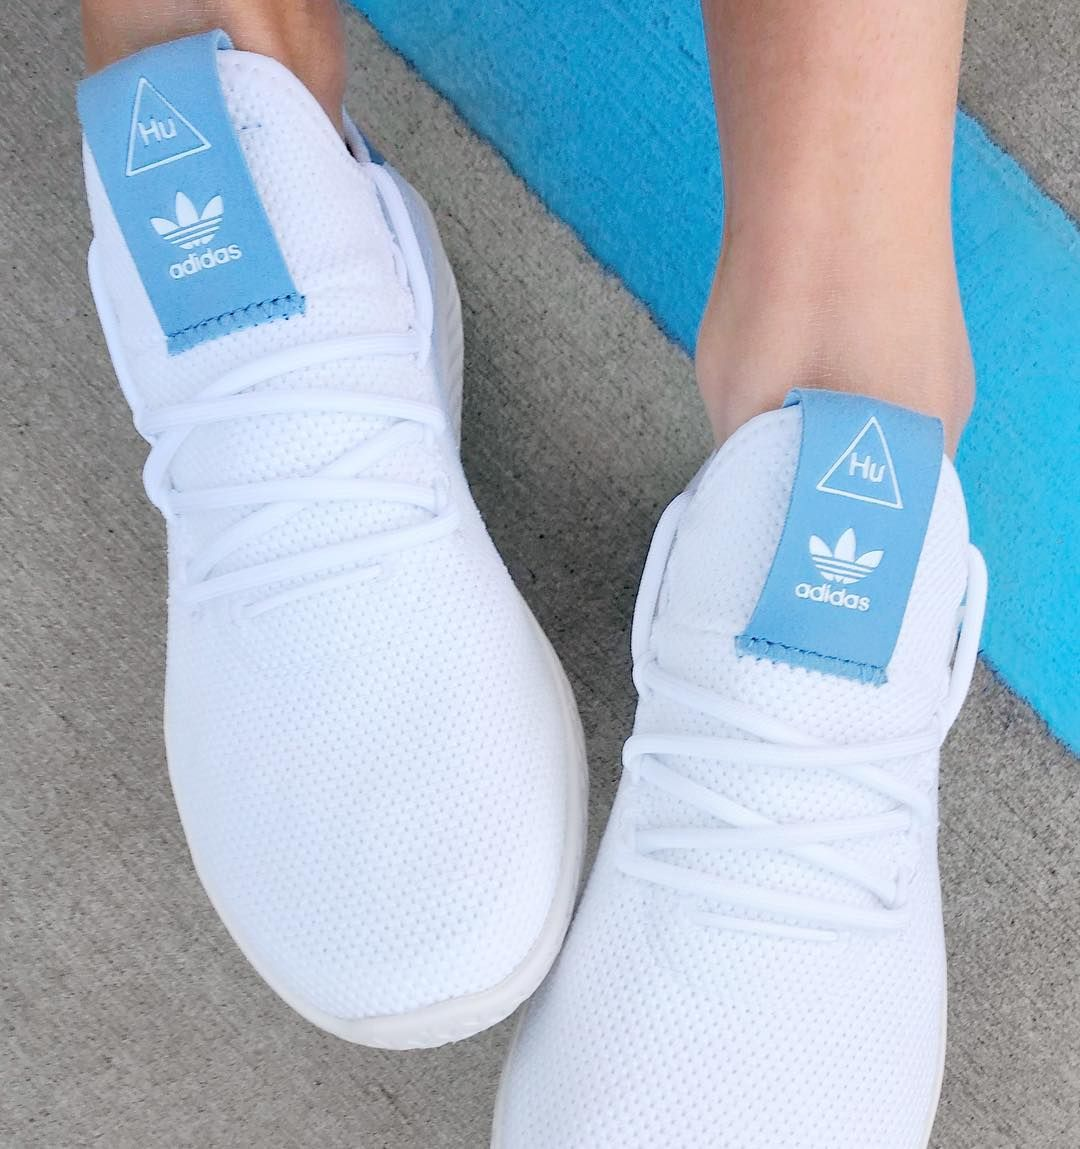 Adidas Originals Pharrell Williams Tennis Hu Blue Rematch Sneakers Fashion Addidas Shoes Tennis Shoes Outfit